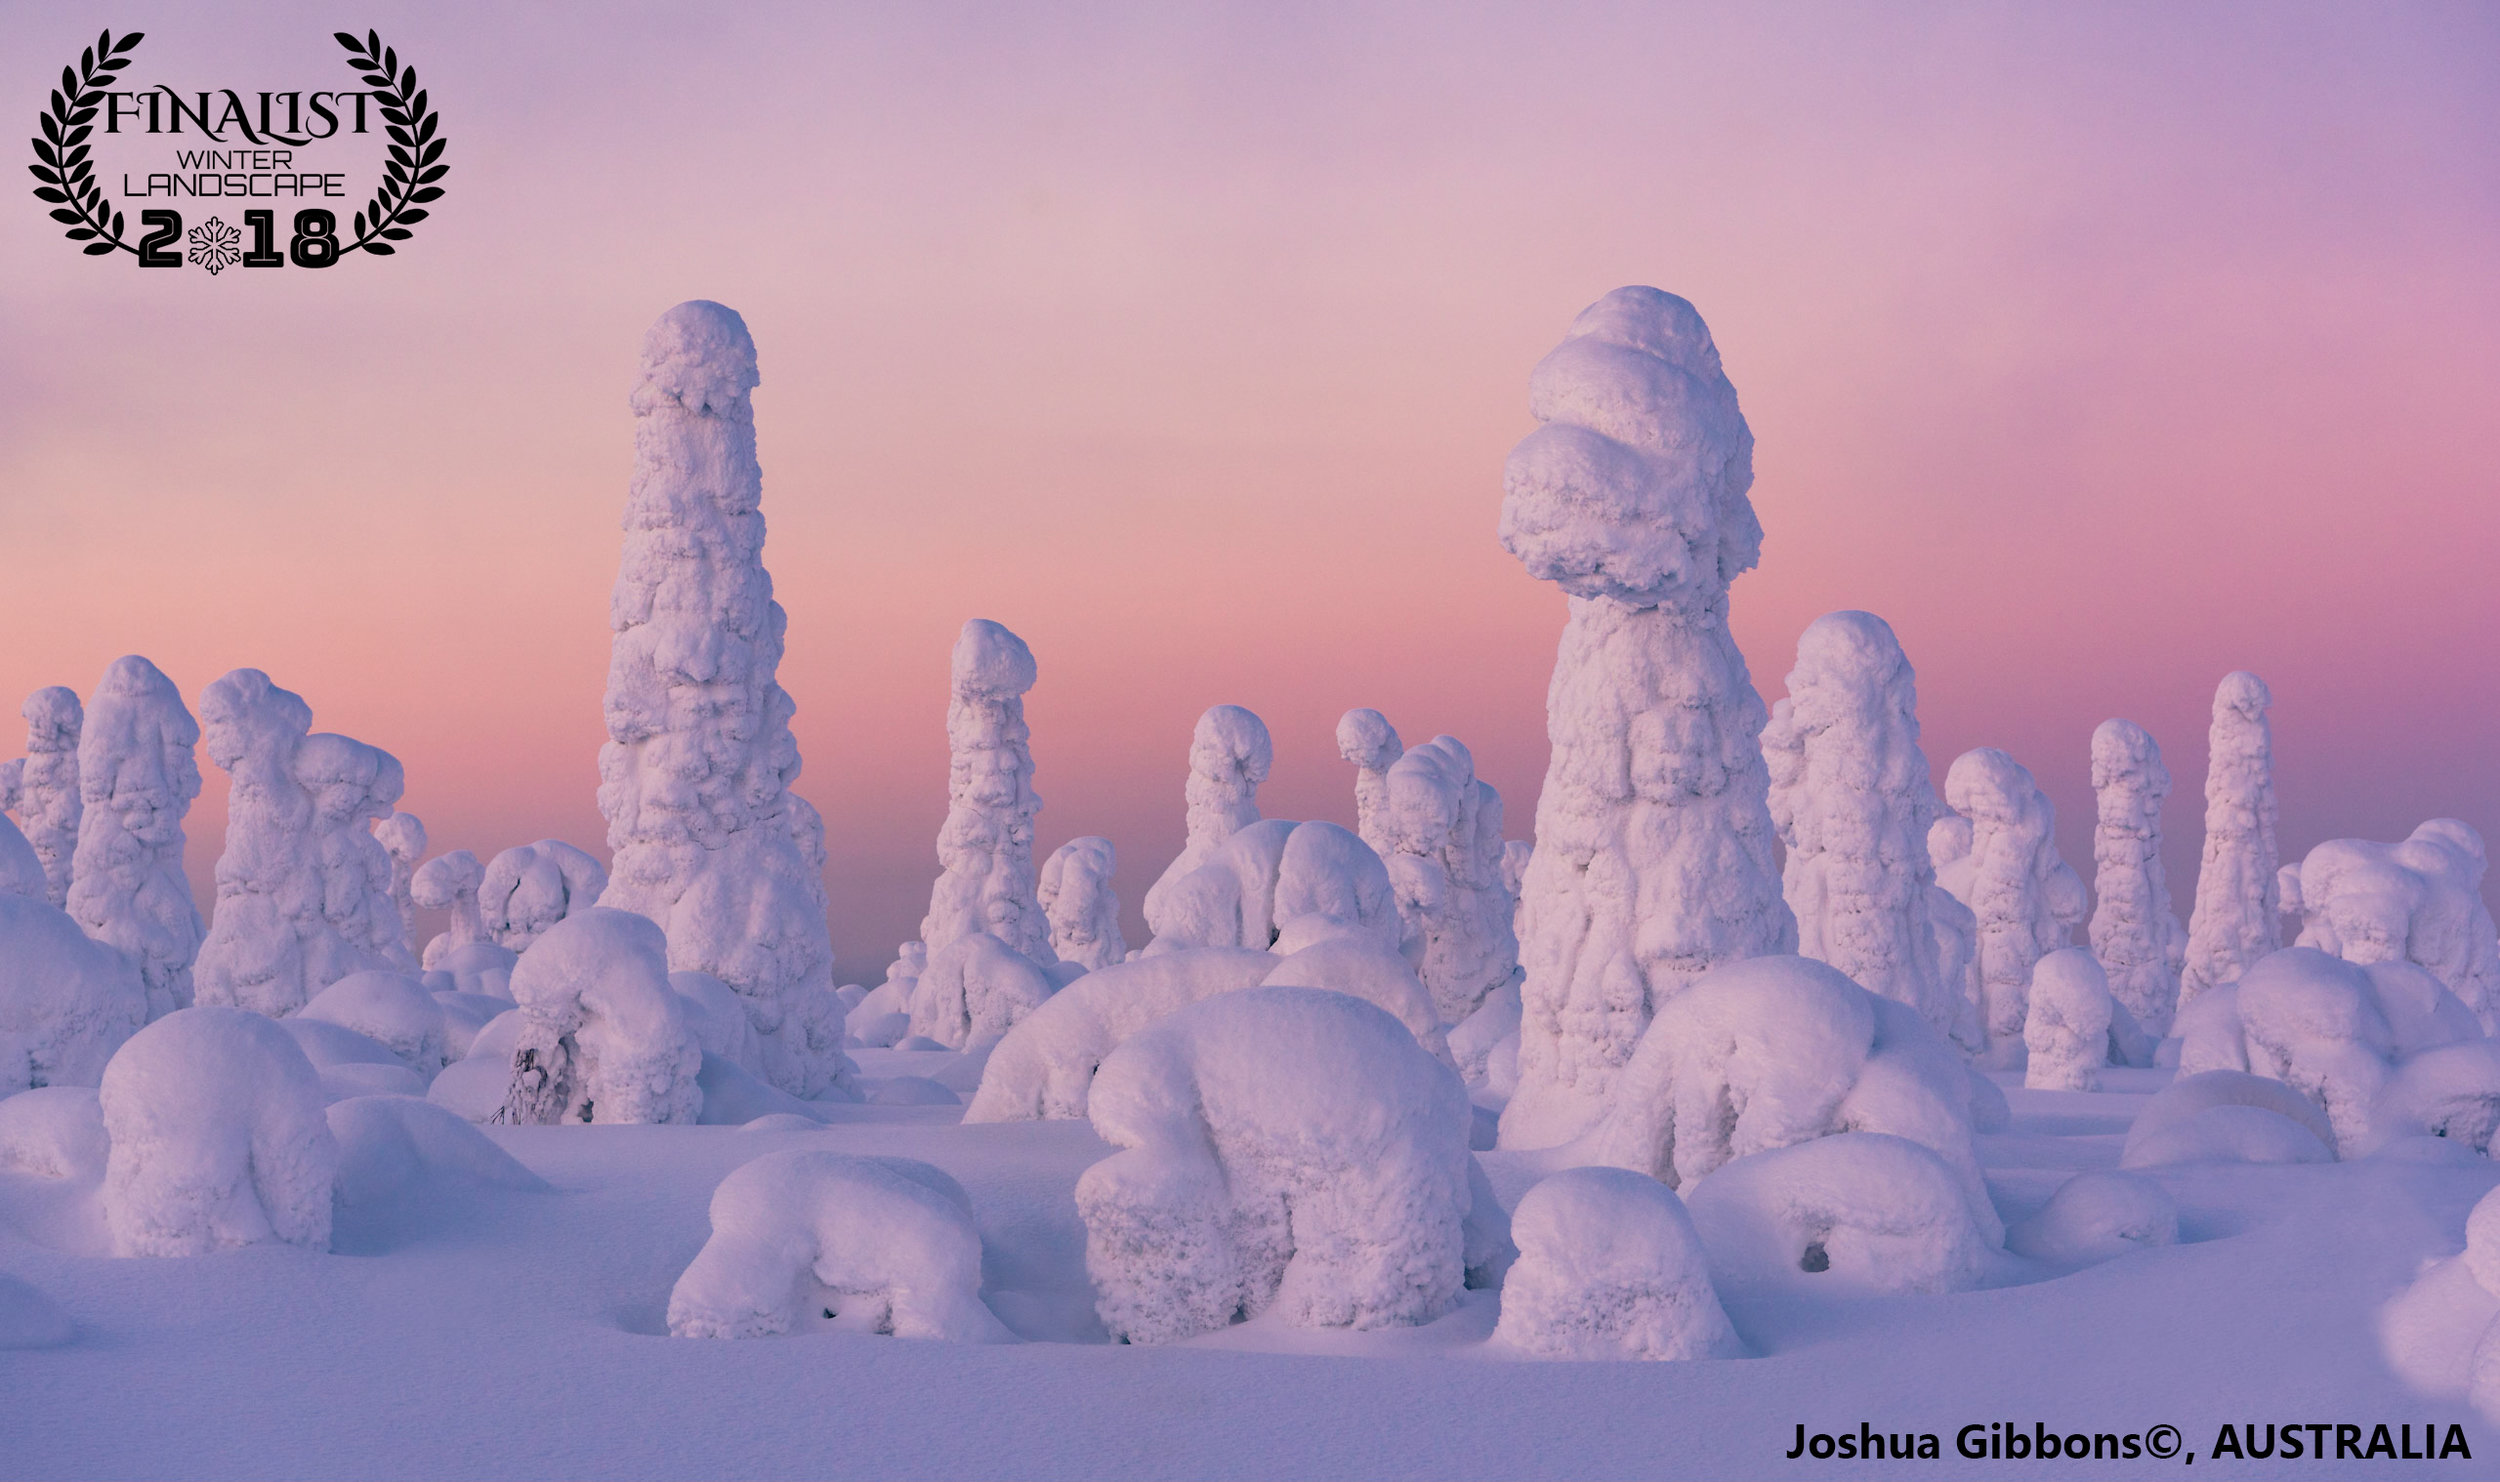 """'Candyland'  """"A scene from a Dr. Seuss book brought into the real world. Crown snow completely encapsulates the forest in Kuntivaara Fjell, Finland. Due to the shallow angle at which the sun sets at high latitudes, the normally fleeting vibrant afterglow of the sunset lingered for thirty minutes.""""  Photographer: Joshua Gibbons, AUSTRALIA"""